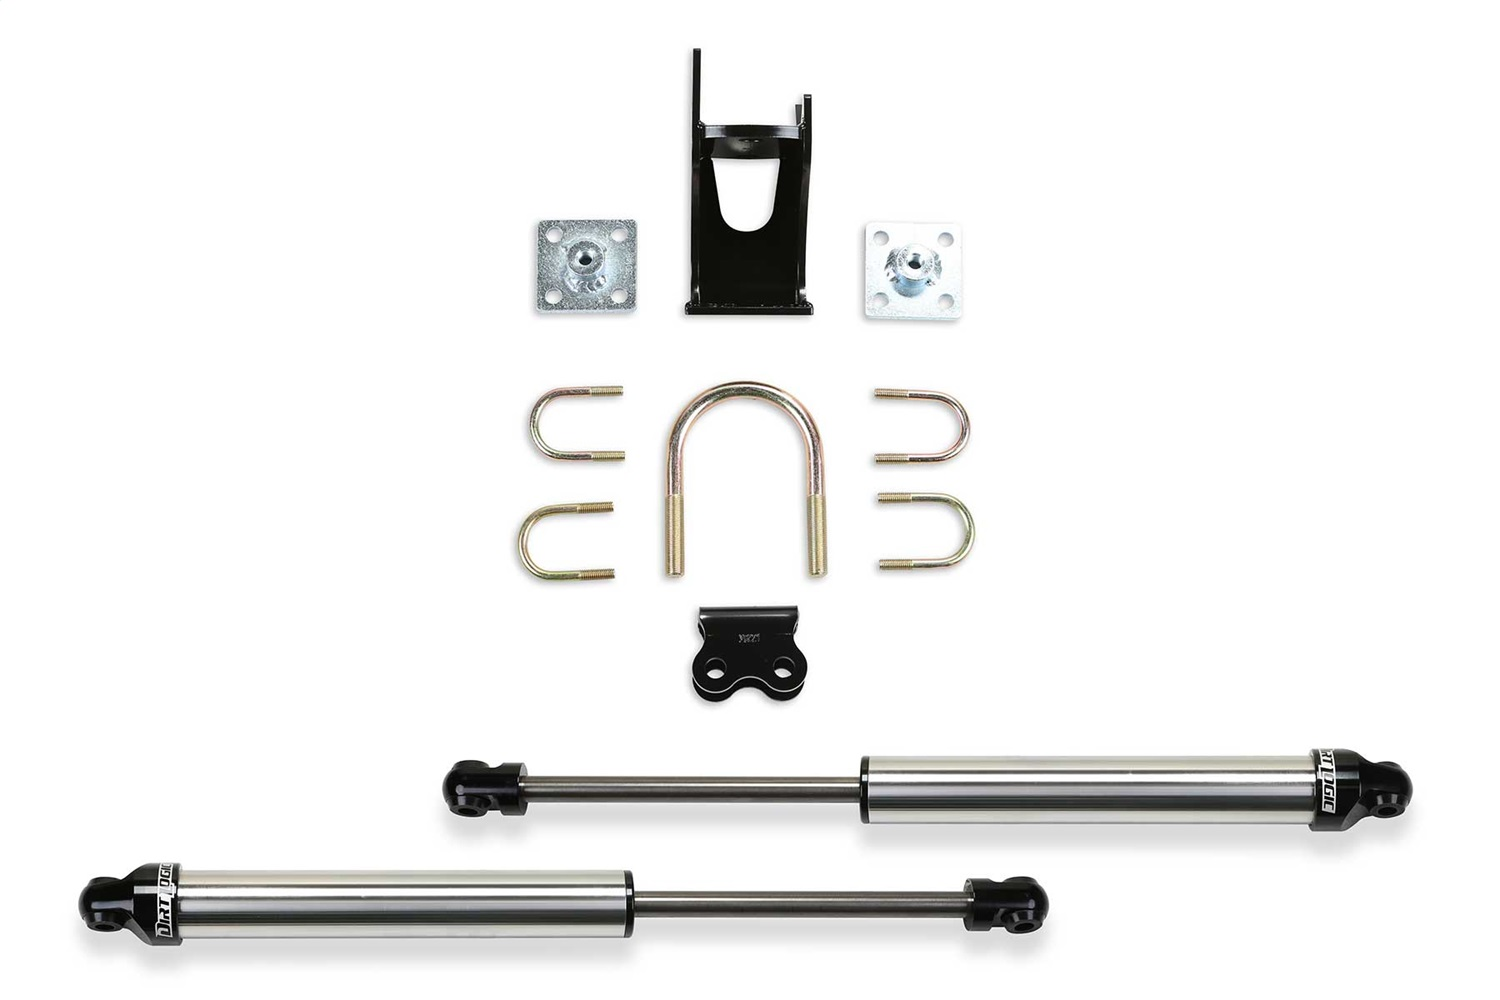 Fabtech FTS220512 Dual Dirt Logic 2.25 Stainless Steel Steering Stabilizer Kit